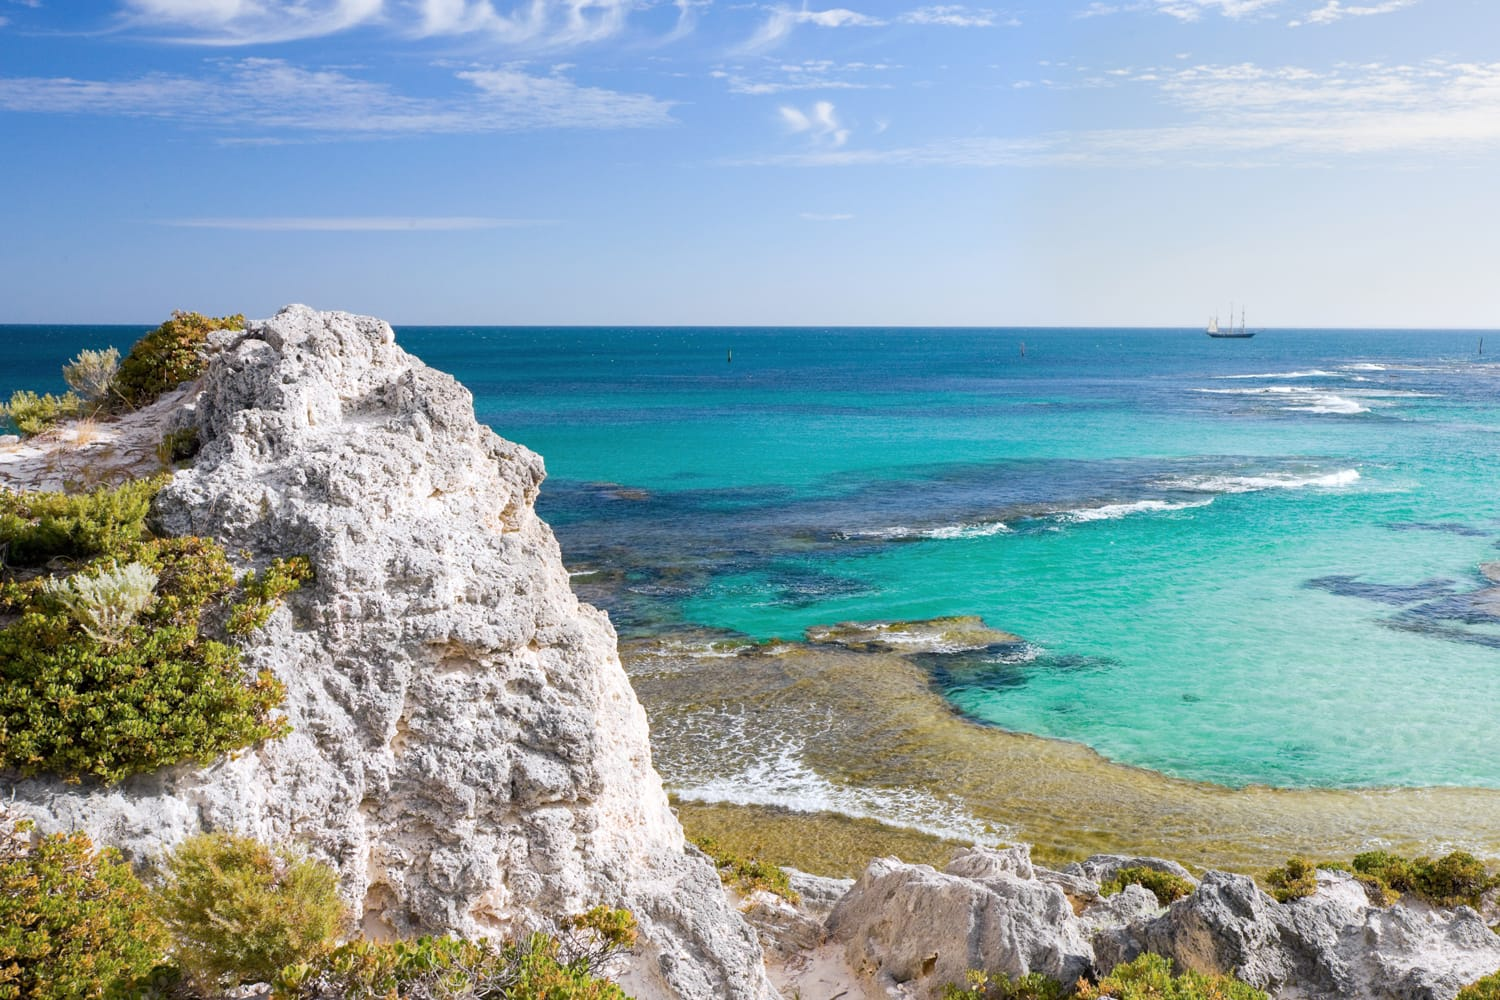 Scenic view over the shore of Rottnest island, Australia